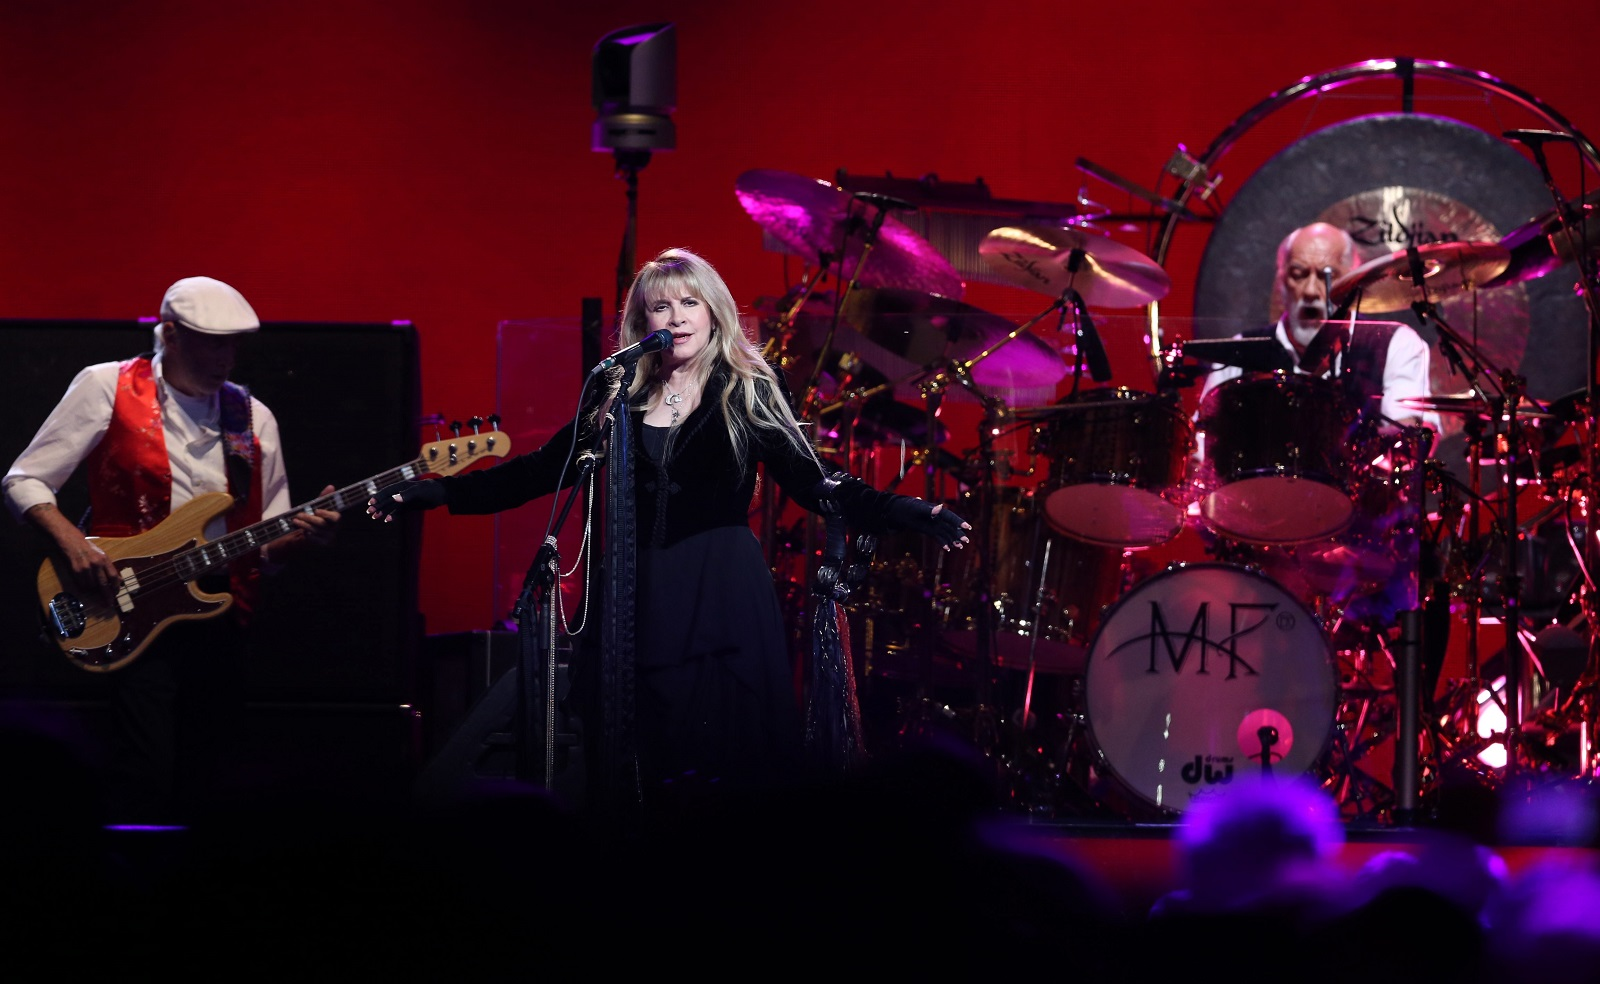 Fleetwood Mac performed in concert at the venue then known as First Niagara Center on Jan. 31, 2015. (Sharon Cantillon/Buffalo News)